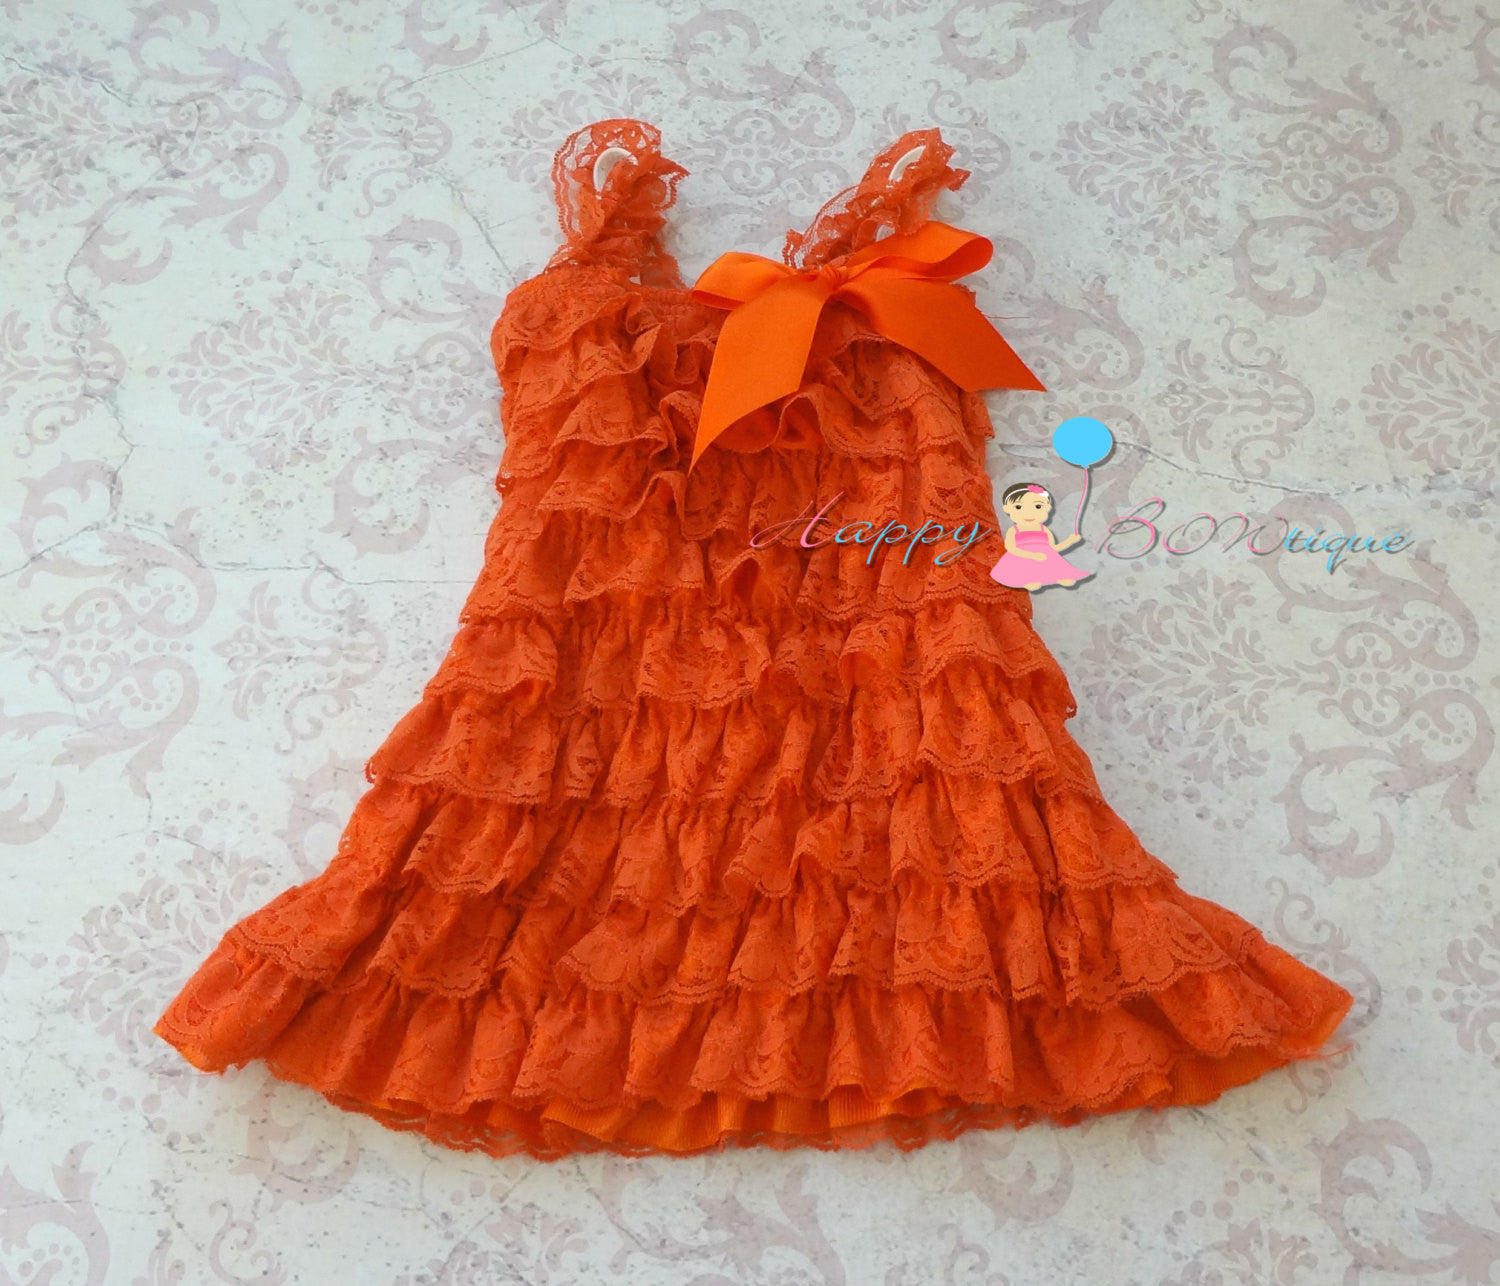 Fall Orange Chocolate Flower lace dress set - Happy BOWtique - children's clothing, Baby Girl clothing